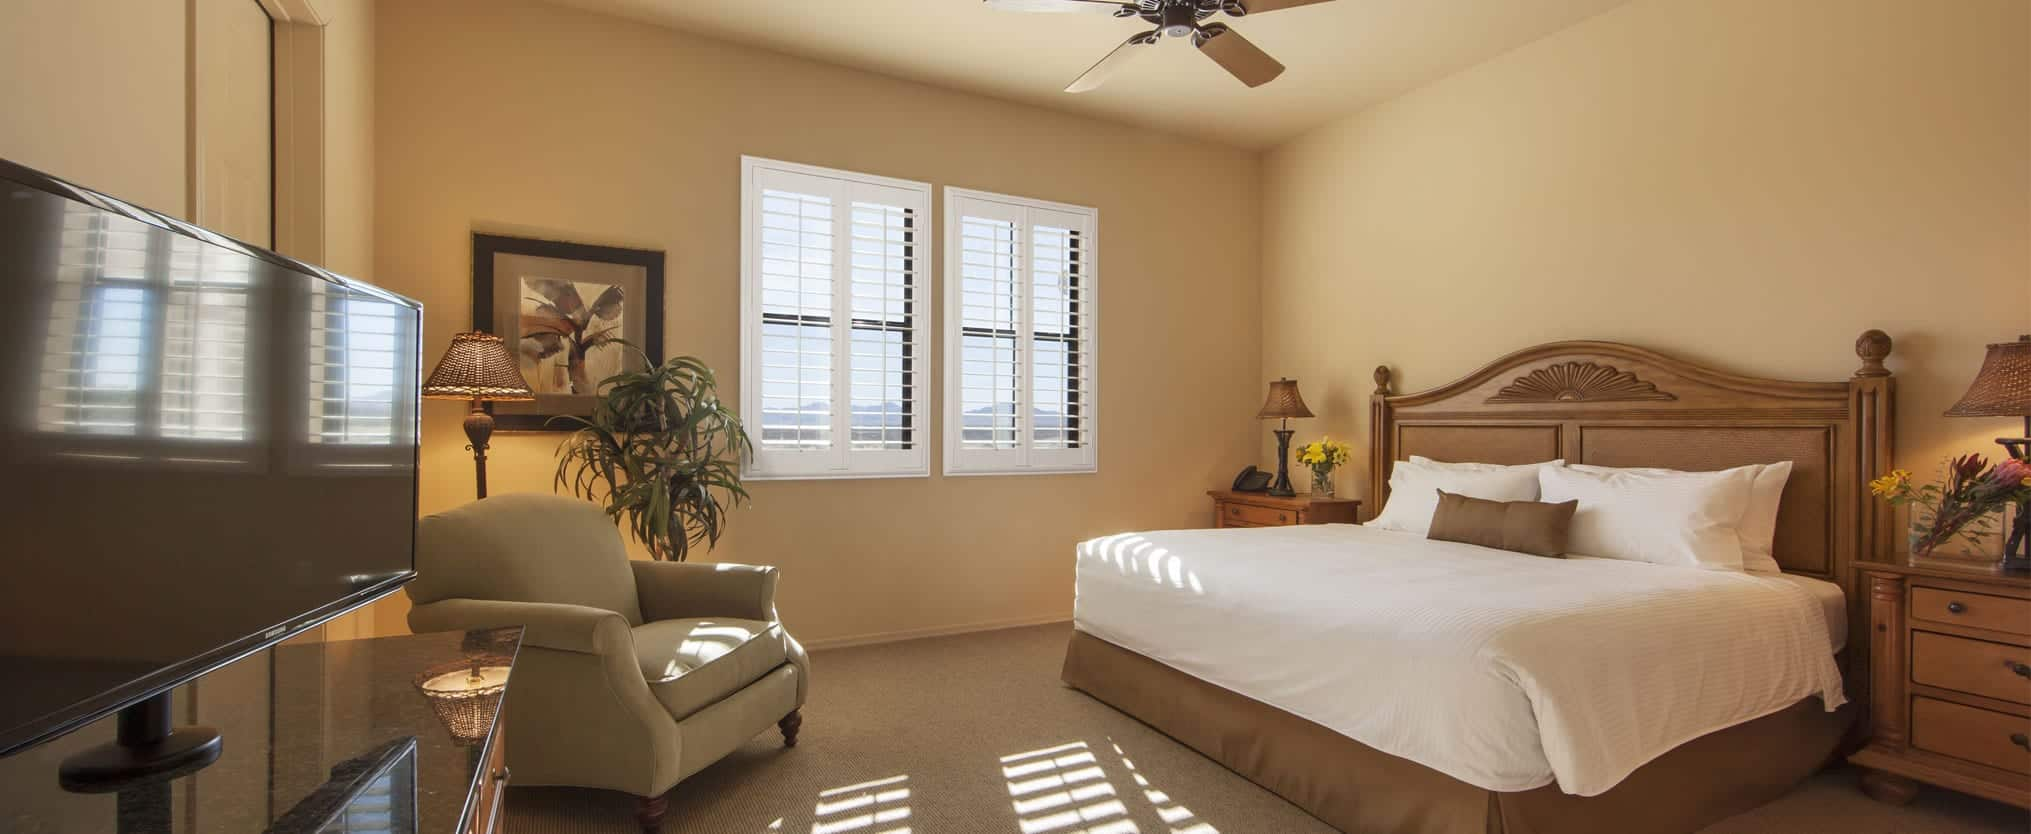 Two Bedroom Suite With One King Bed And Two Queen Beds